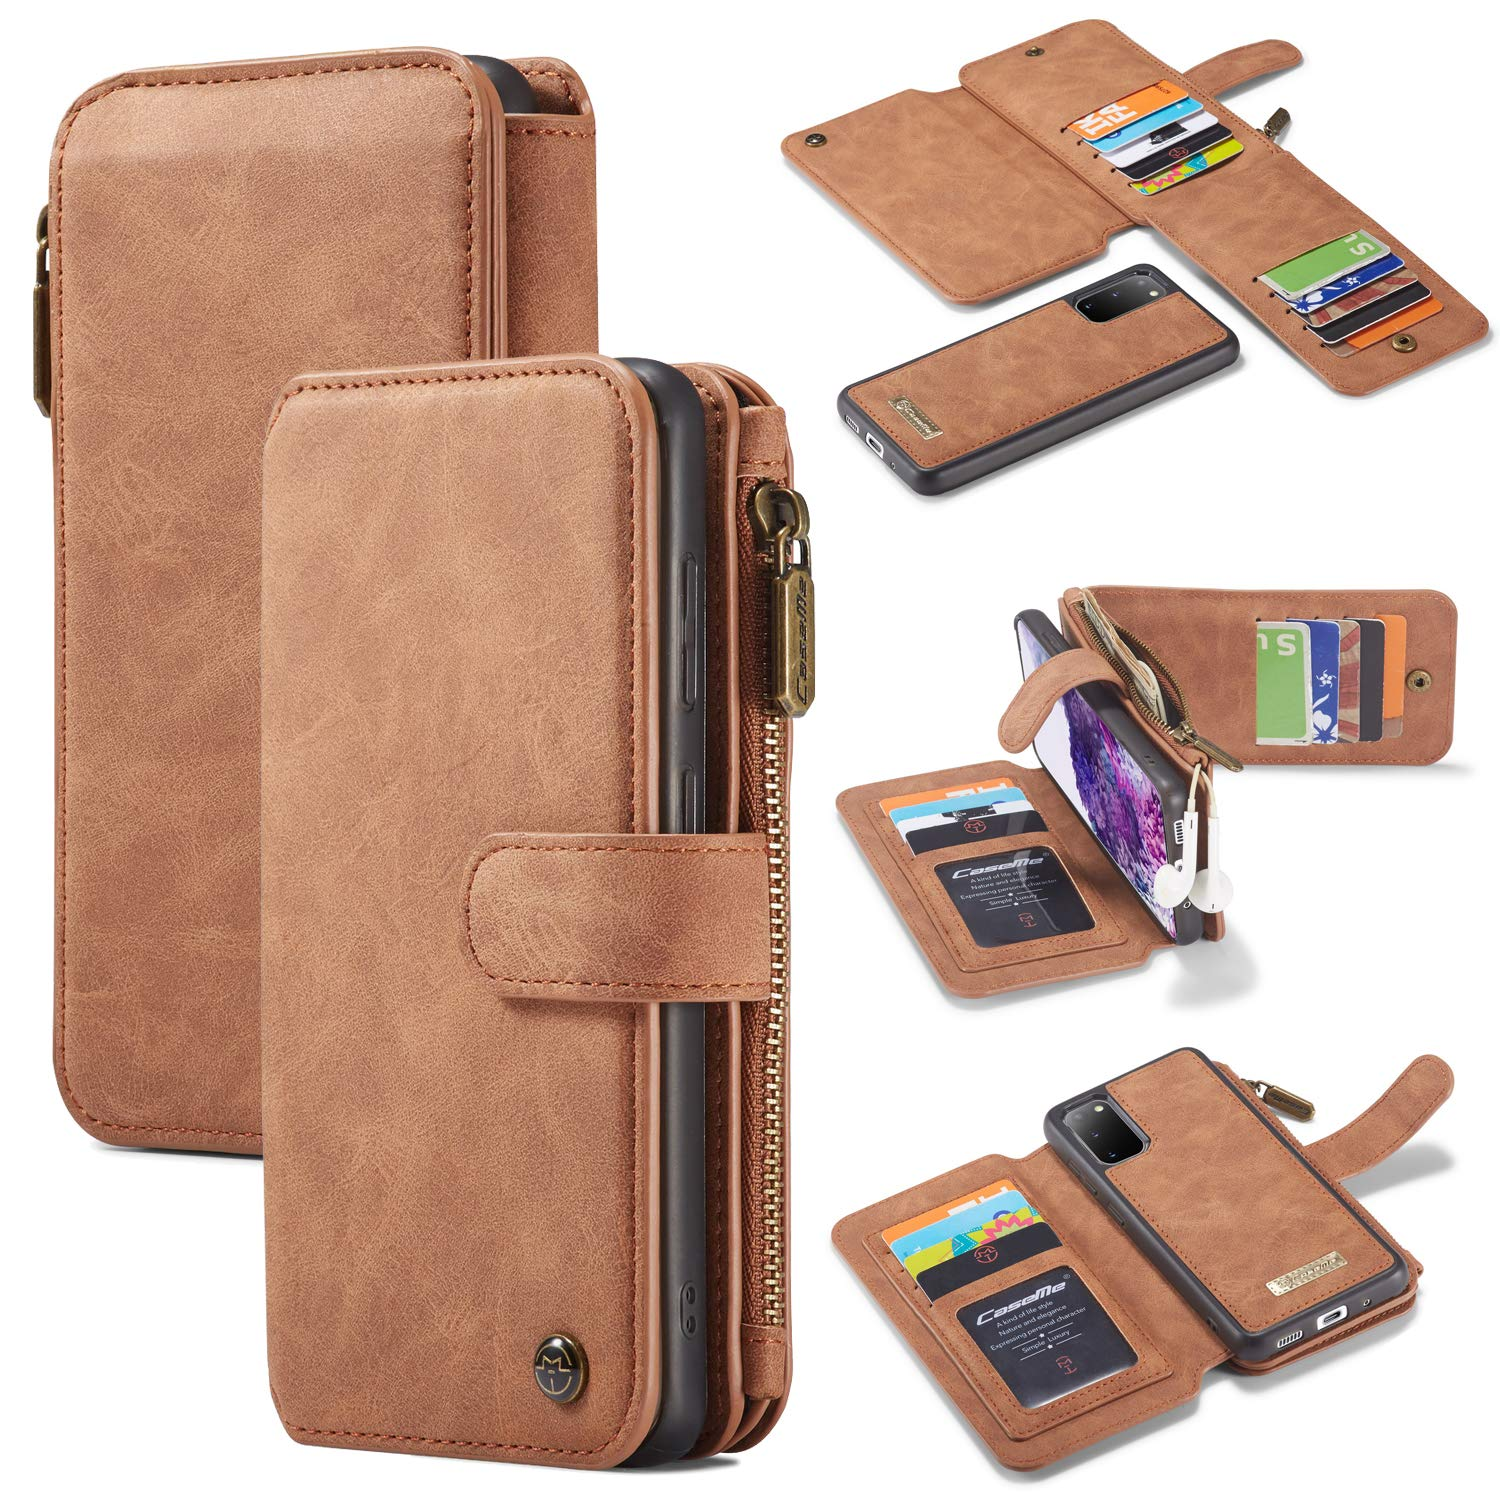 BeyeX Samsung Galaxy S8 Flip Case Leather Cover Extra-Protective Business Cell Phone case Kickstand Card Holders Fourteen Card Slot Anti Fall Zipper Bag Detachable Detachable Brown